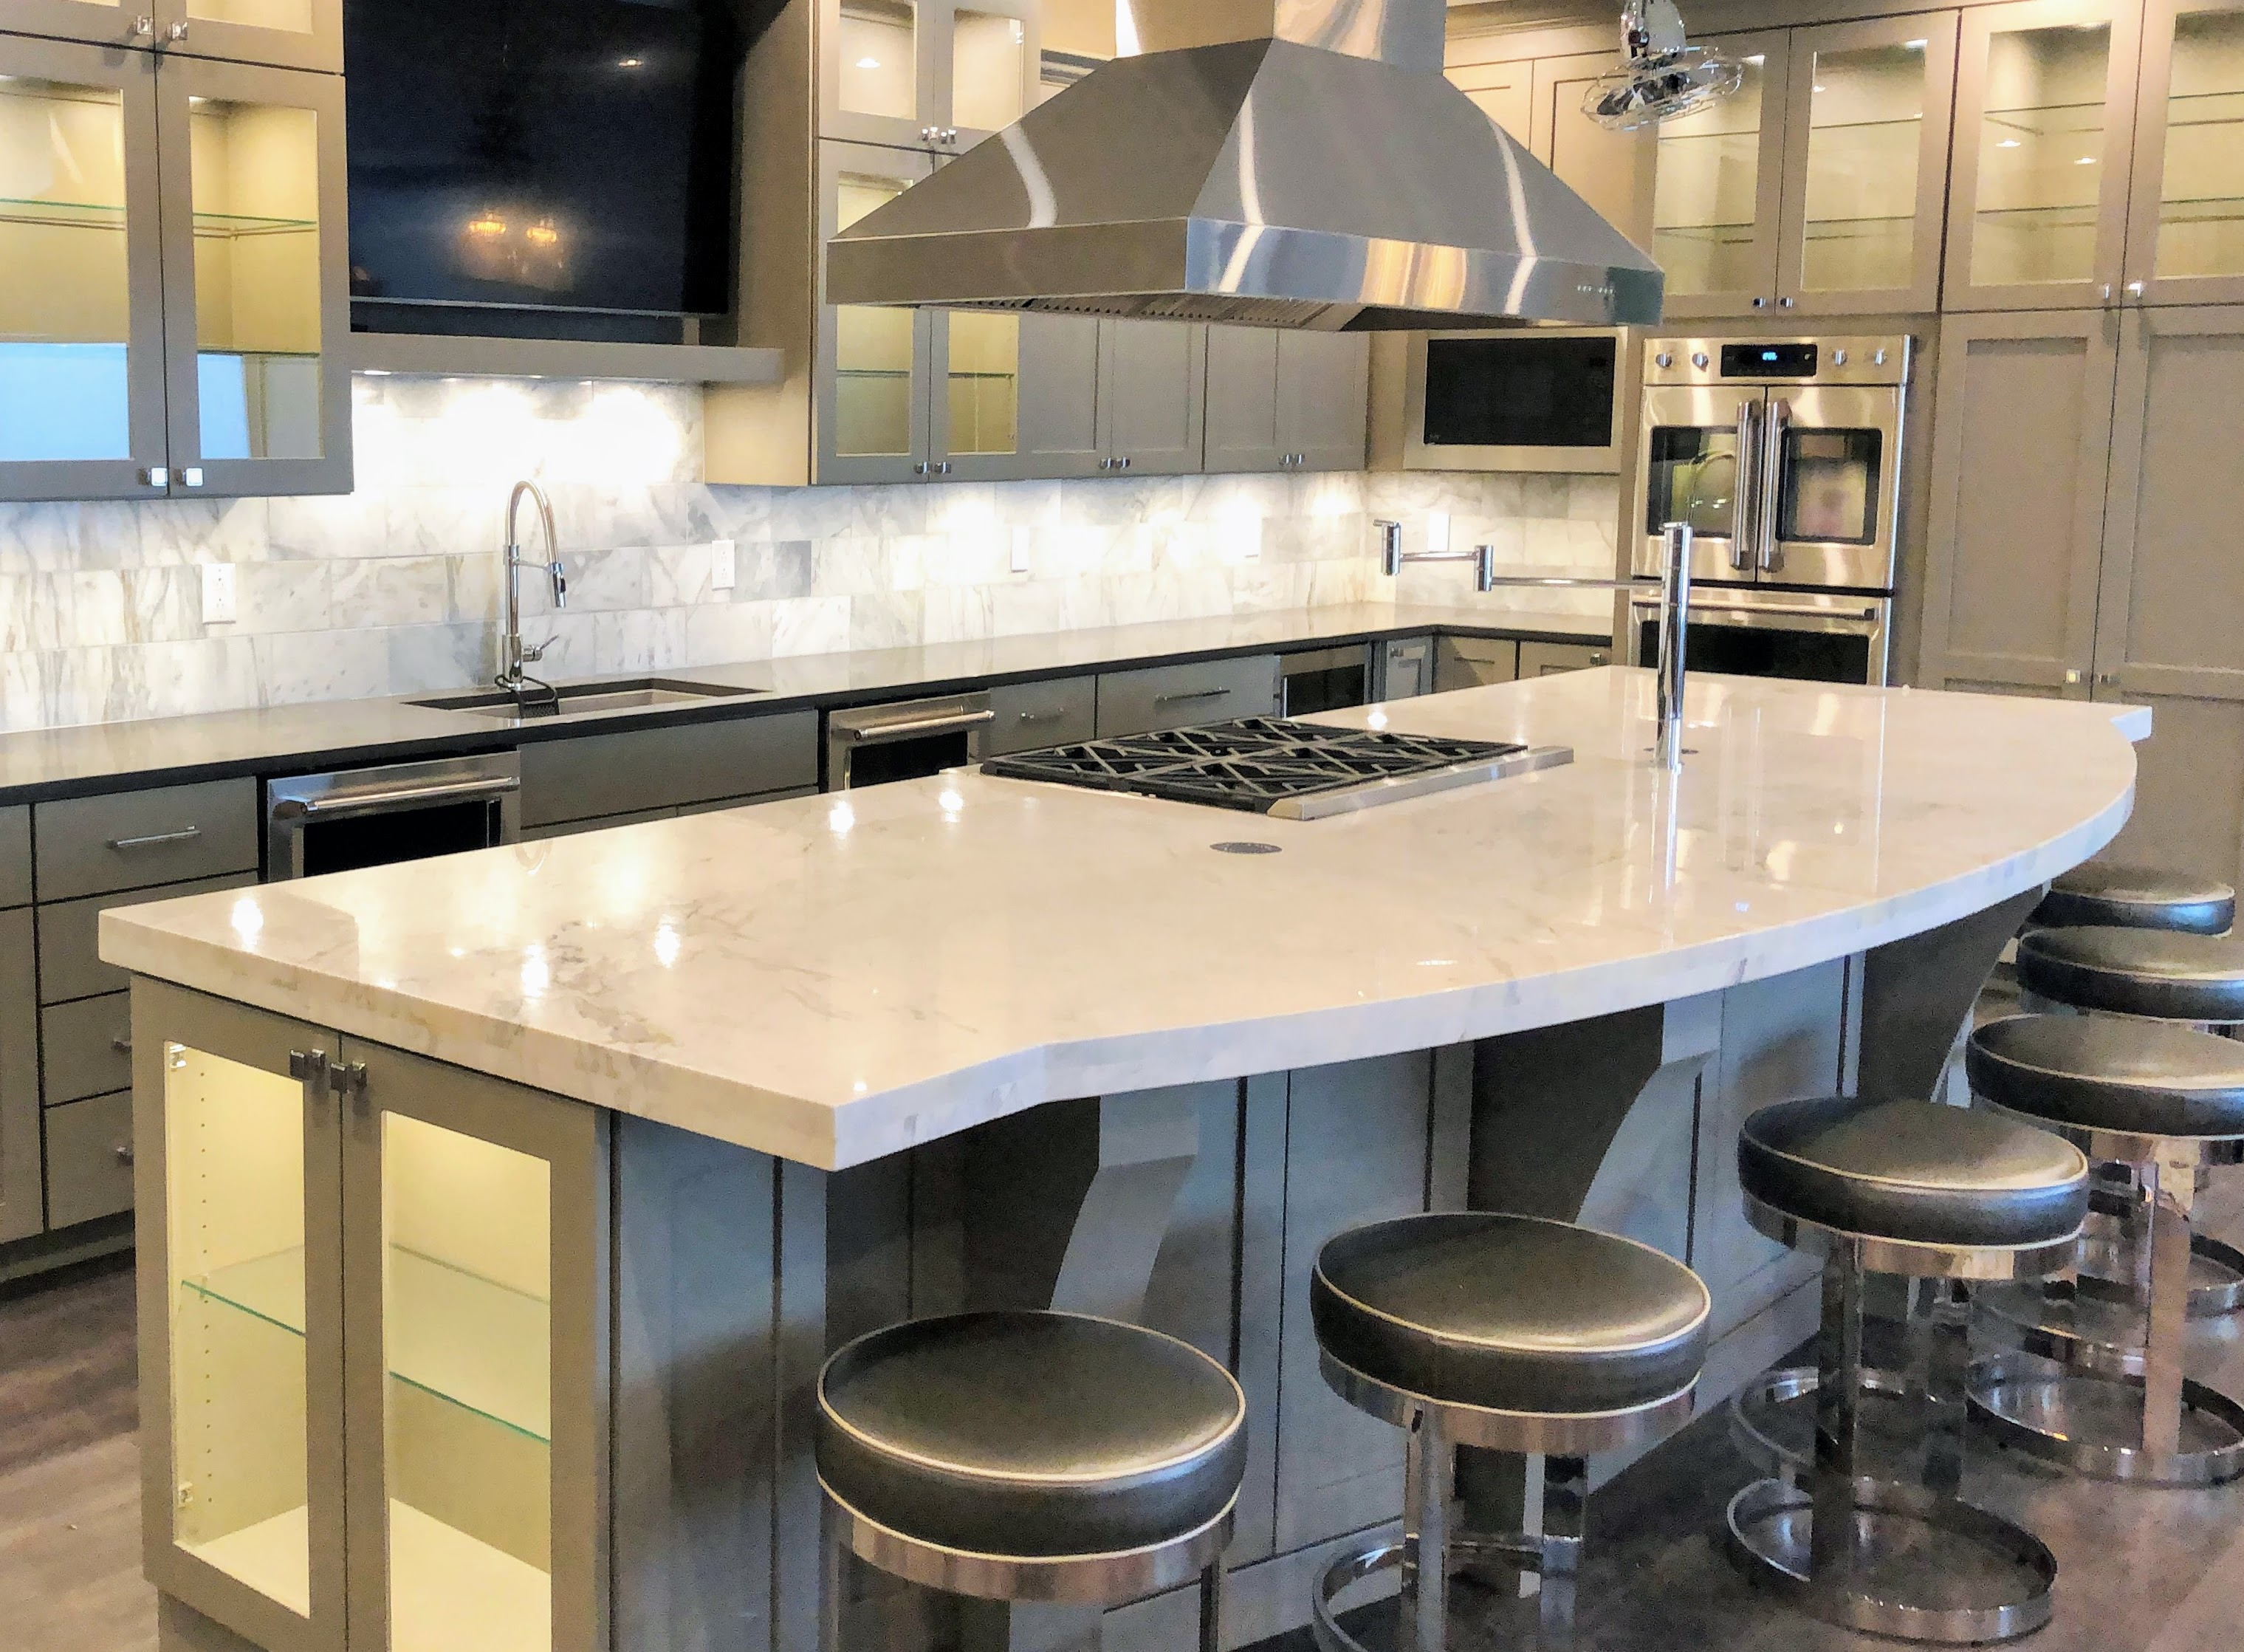 Kitchen Cabinetry with Glass - Kitchen Remodel - Built By You